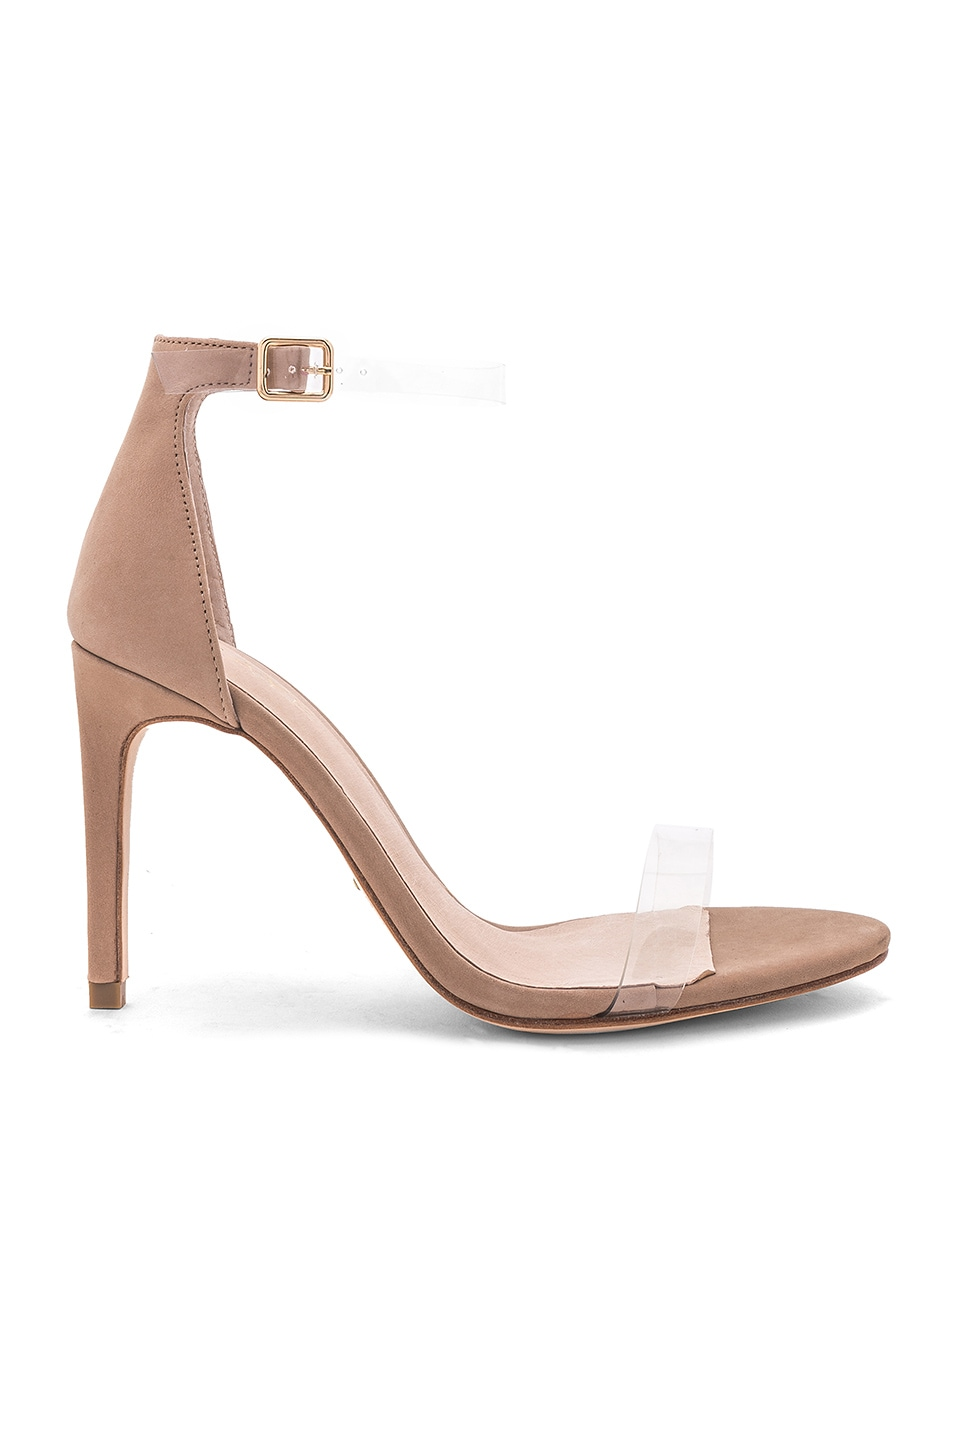 RAYE Jameson Heel in Nude